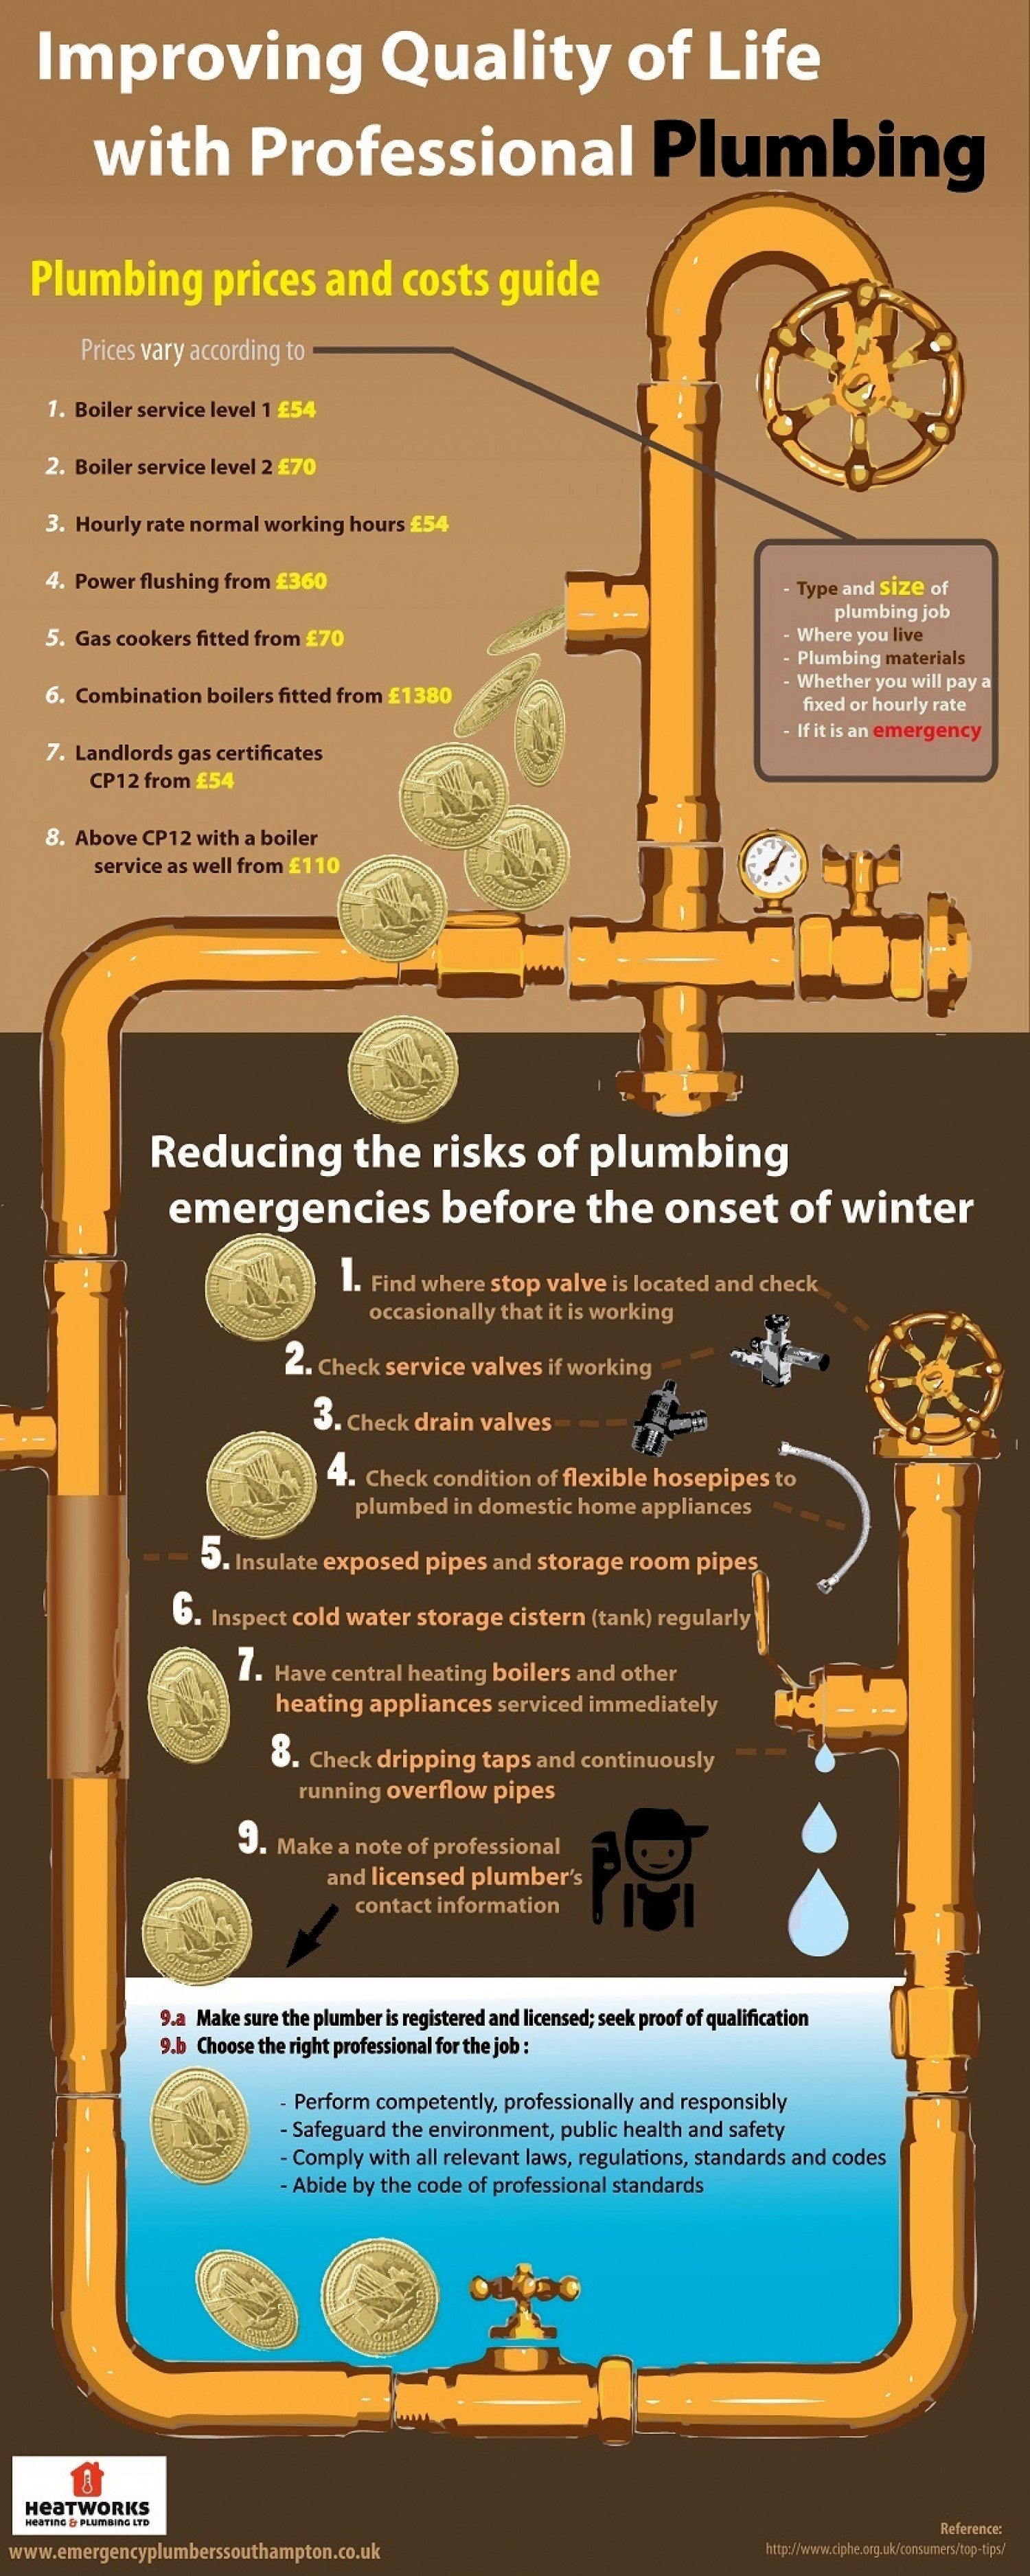 Improving Quality of Life with Professional Plumbing Infographic